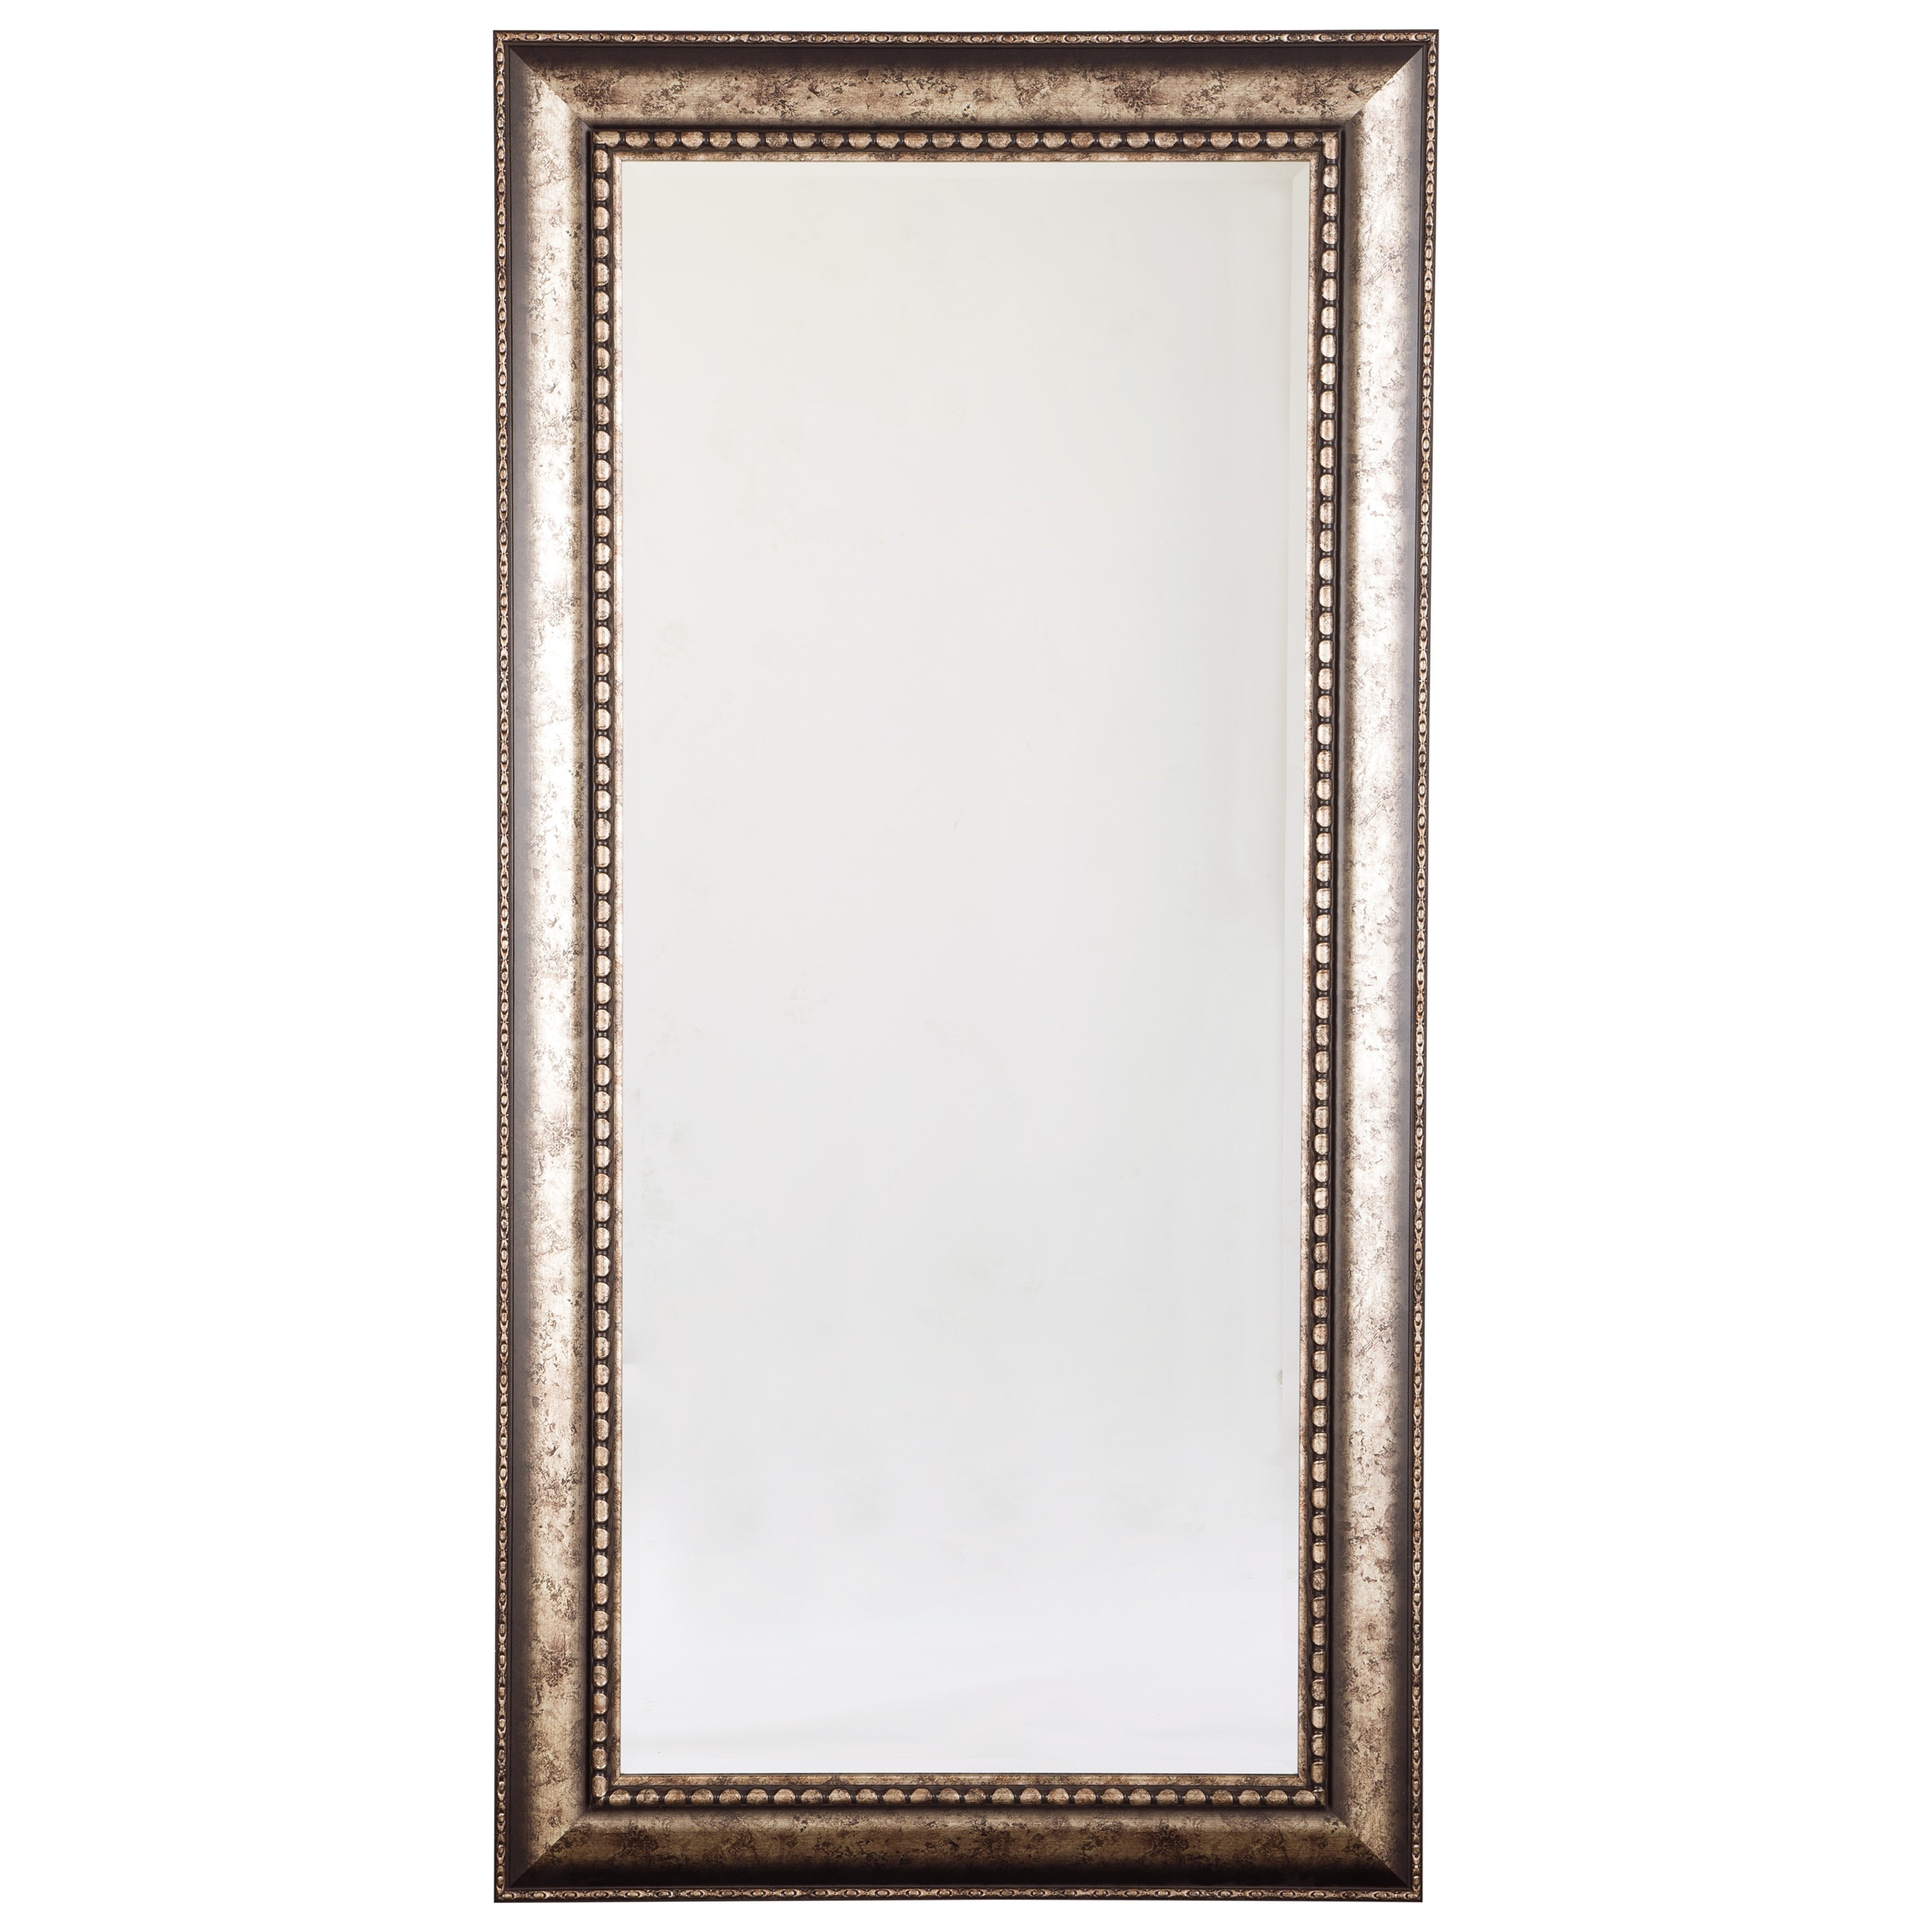 Accent Mirrors Dulal Antique Silver Finish Accent Mirror by Signature Design by Ashley at Sparks HomeStore